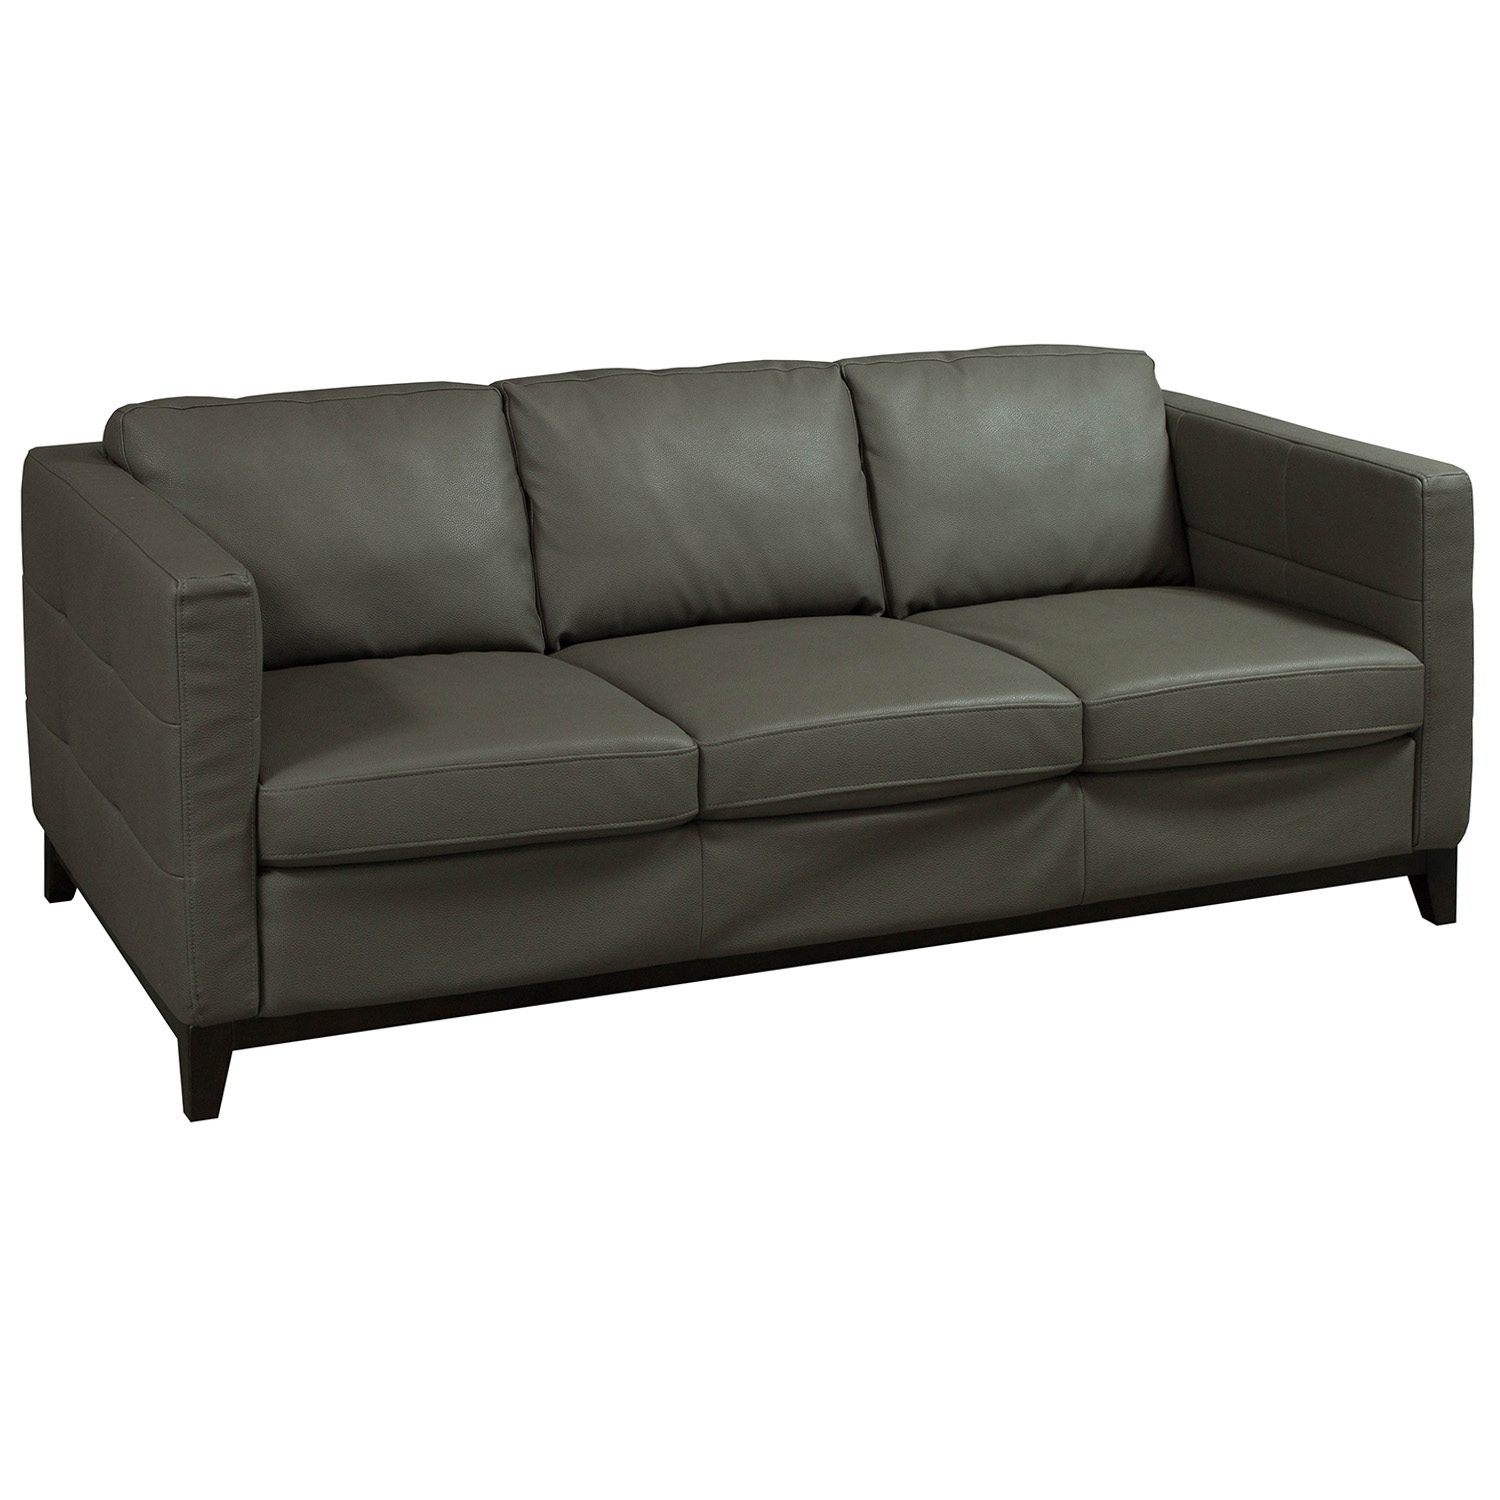 Jason Furniture Used Leather Sofa Brown National Office